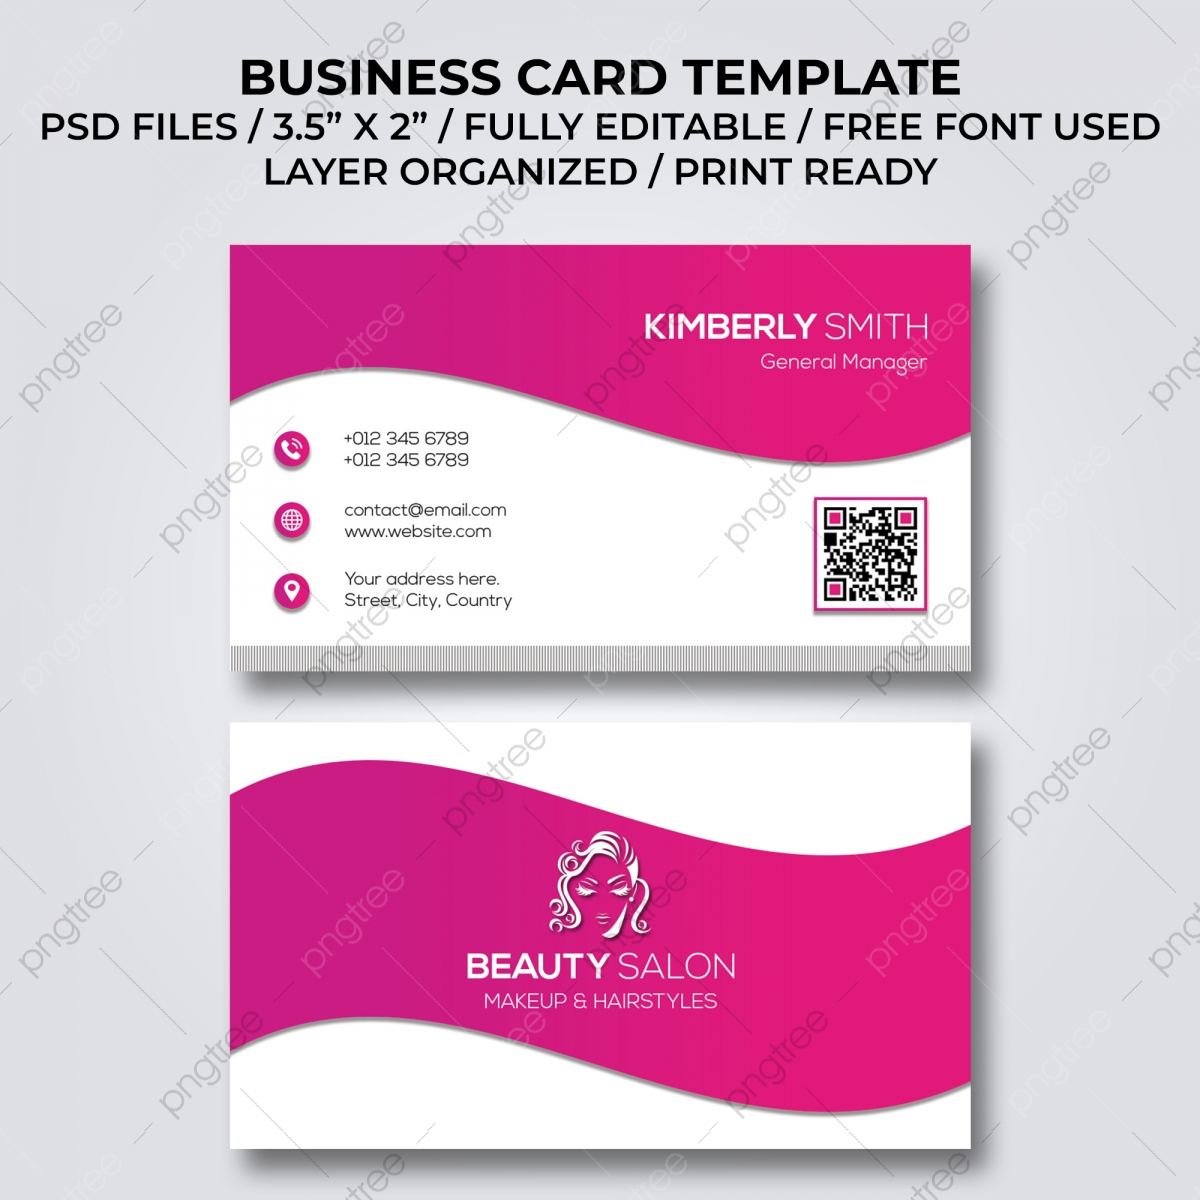 Beauty Salon Business Card Png Images Vector And Psd Files Free Download On Pngtree